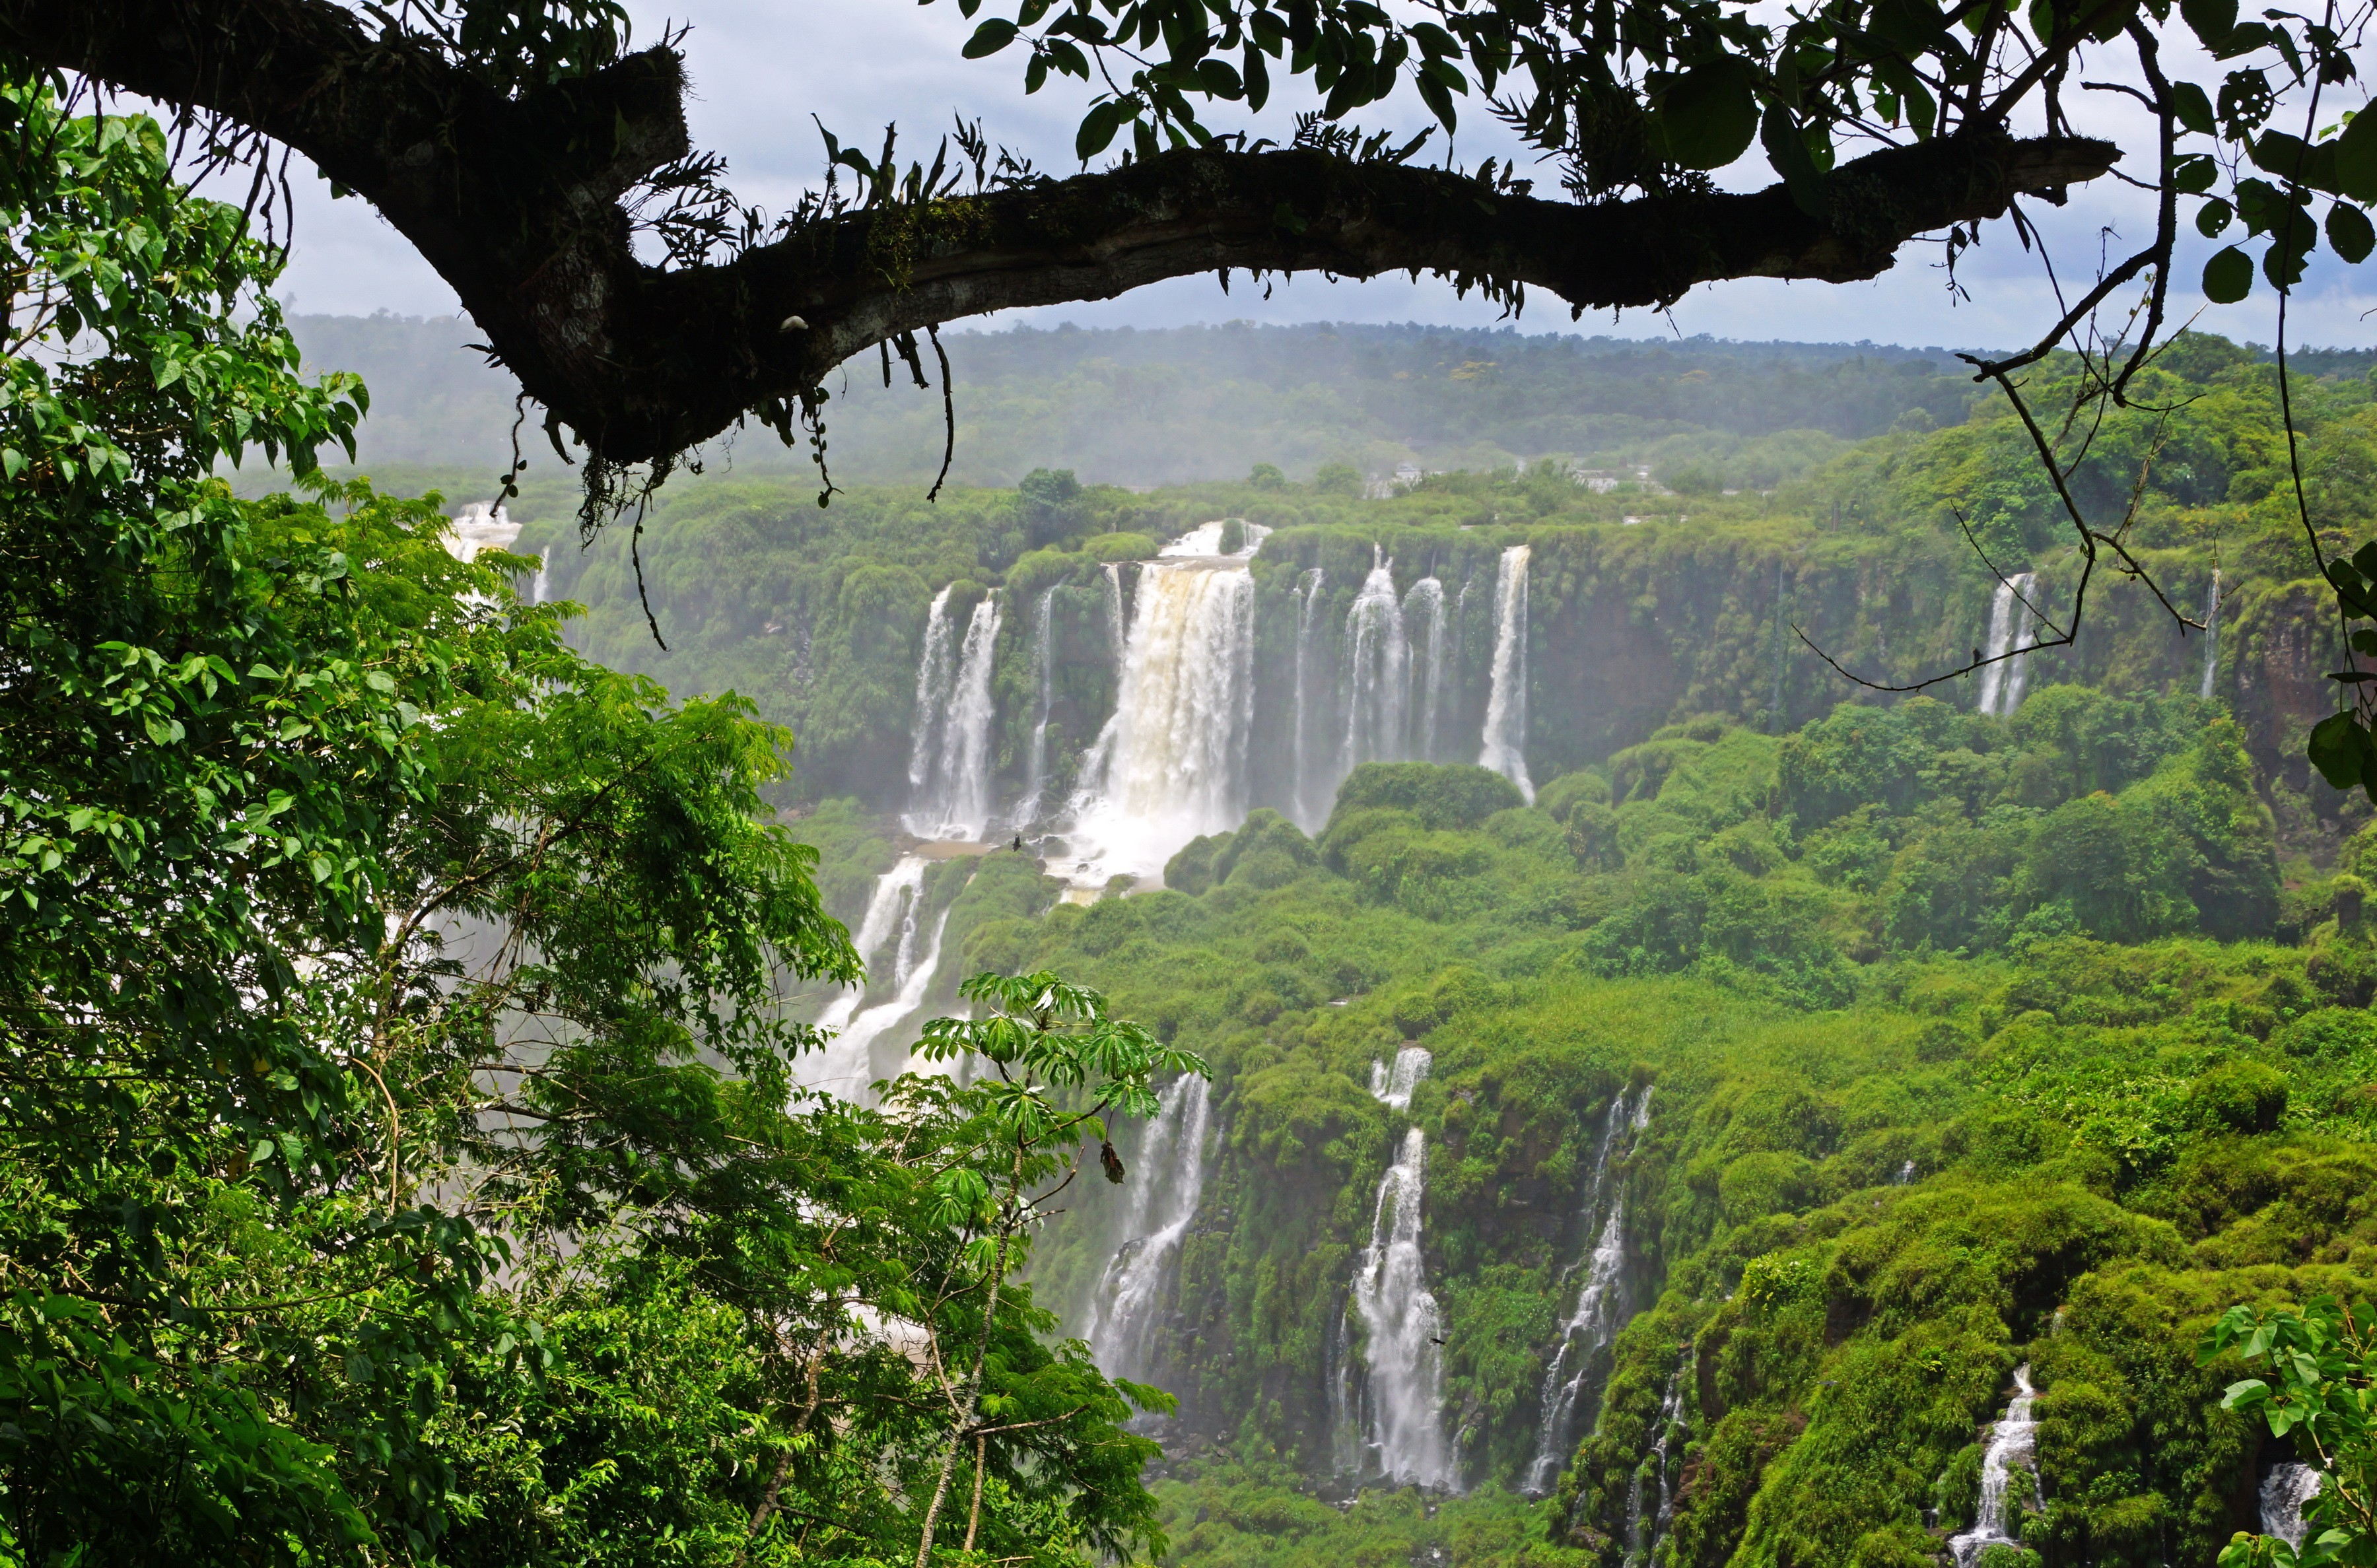 Must see Wallpaper Desktop Background Waterfall - Iguazu-Falls-5  Pic_934765 .jpg